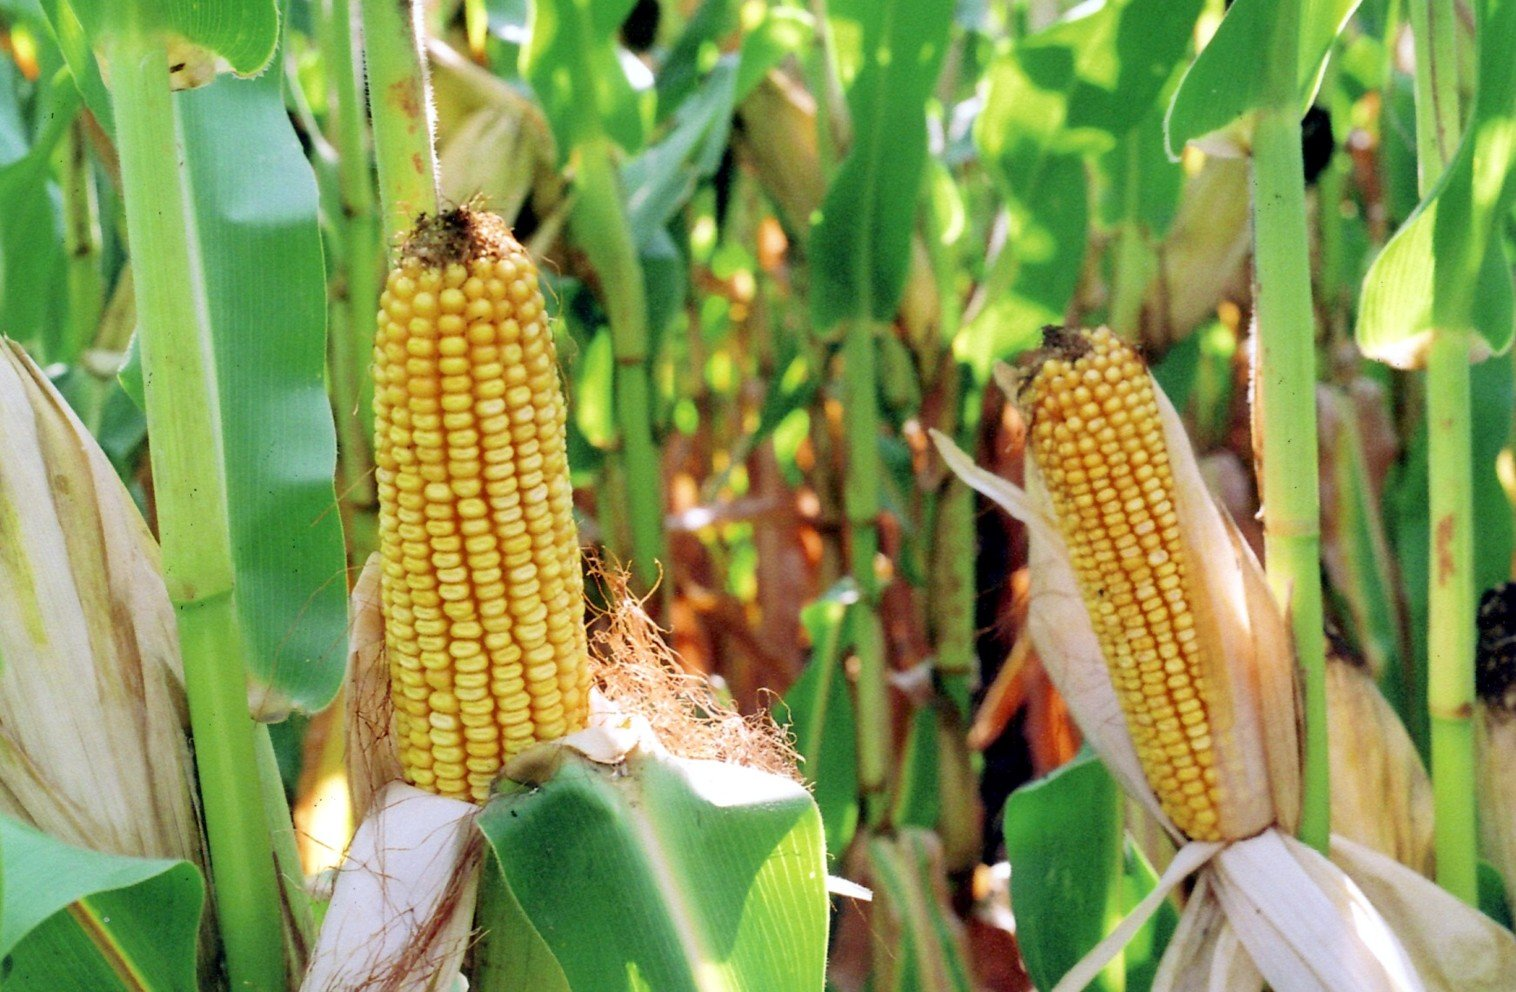 Corn and Wheat Export Sales Power Higher